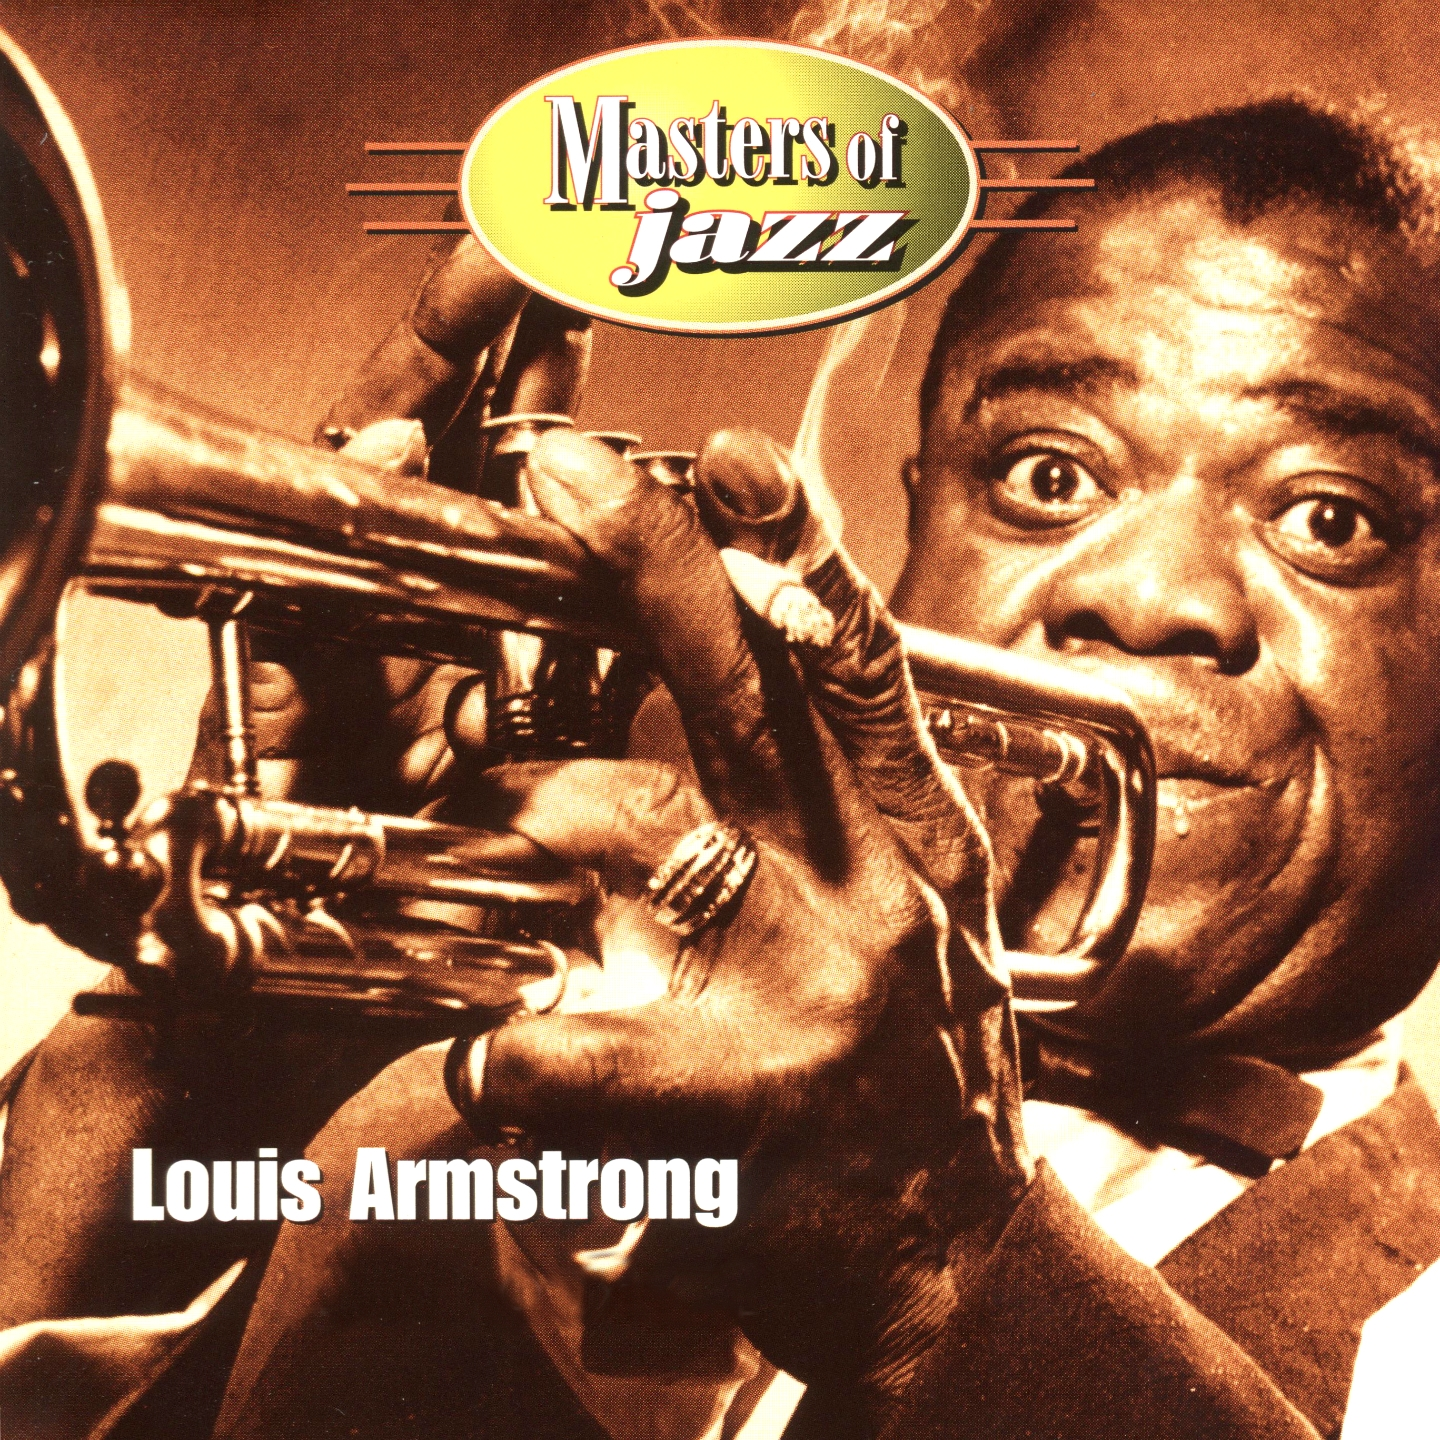 louis armstrong the legend of jazz music history Cornet/trumpet player louis satchmo armstrong (1901) revolutionized both the instrumental and the vocal style of jazz king oliver's substitute in kid ory's band, armstrong left new orleans in 1922 to join oliver in chicago, where he recorded his weather bird rag (april 1923), and then (1924.